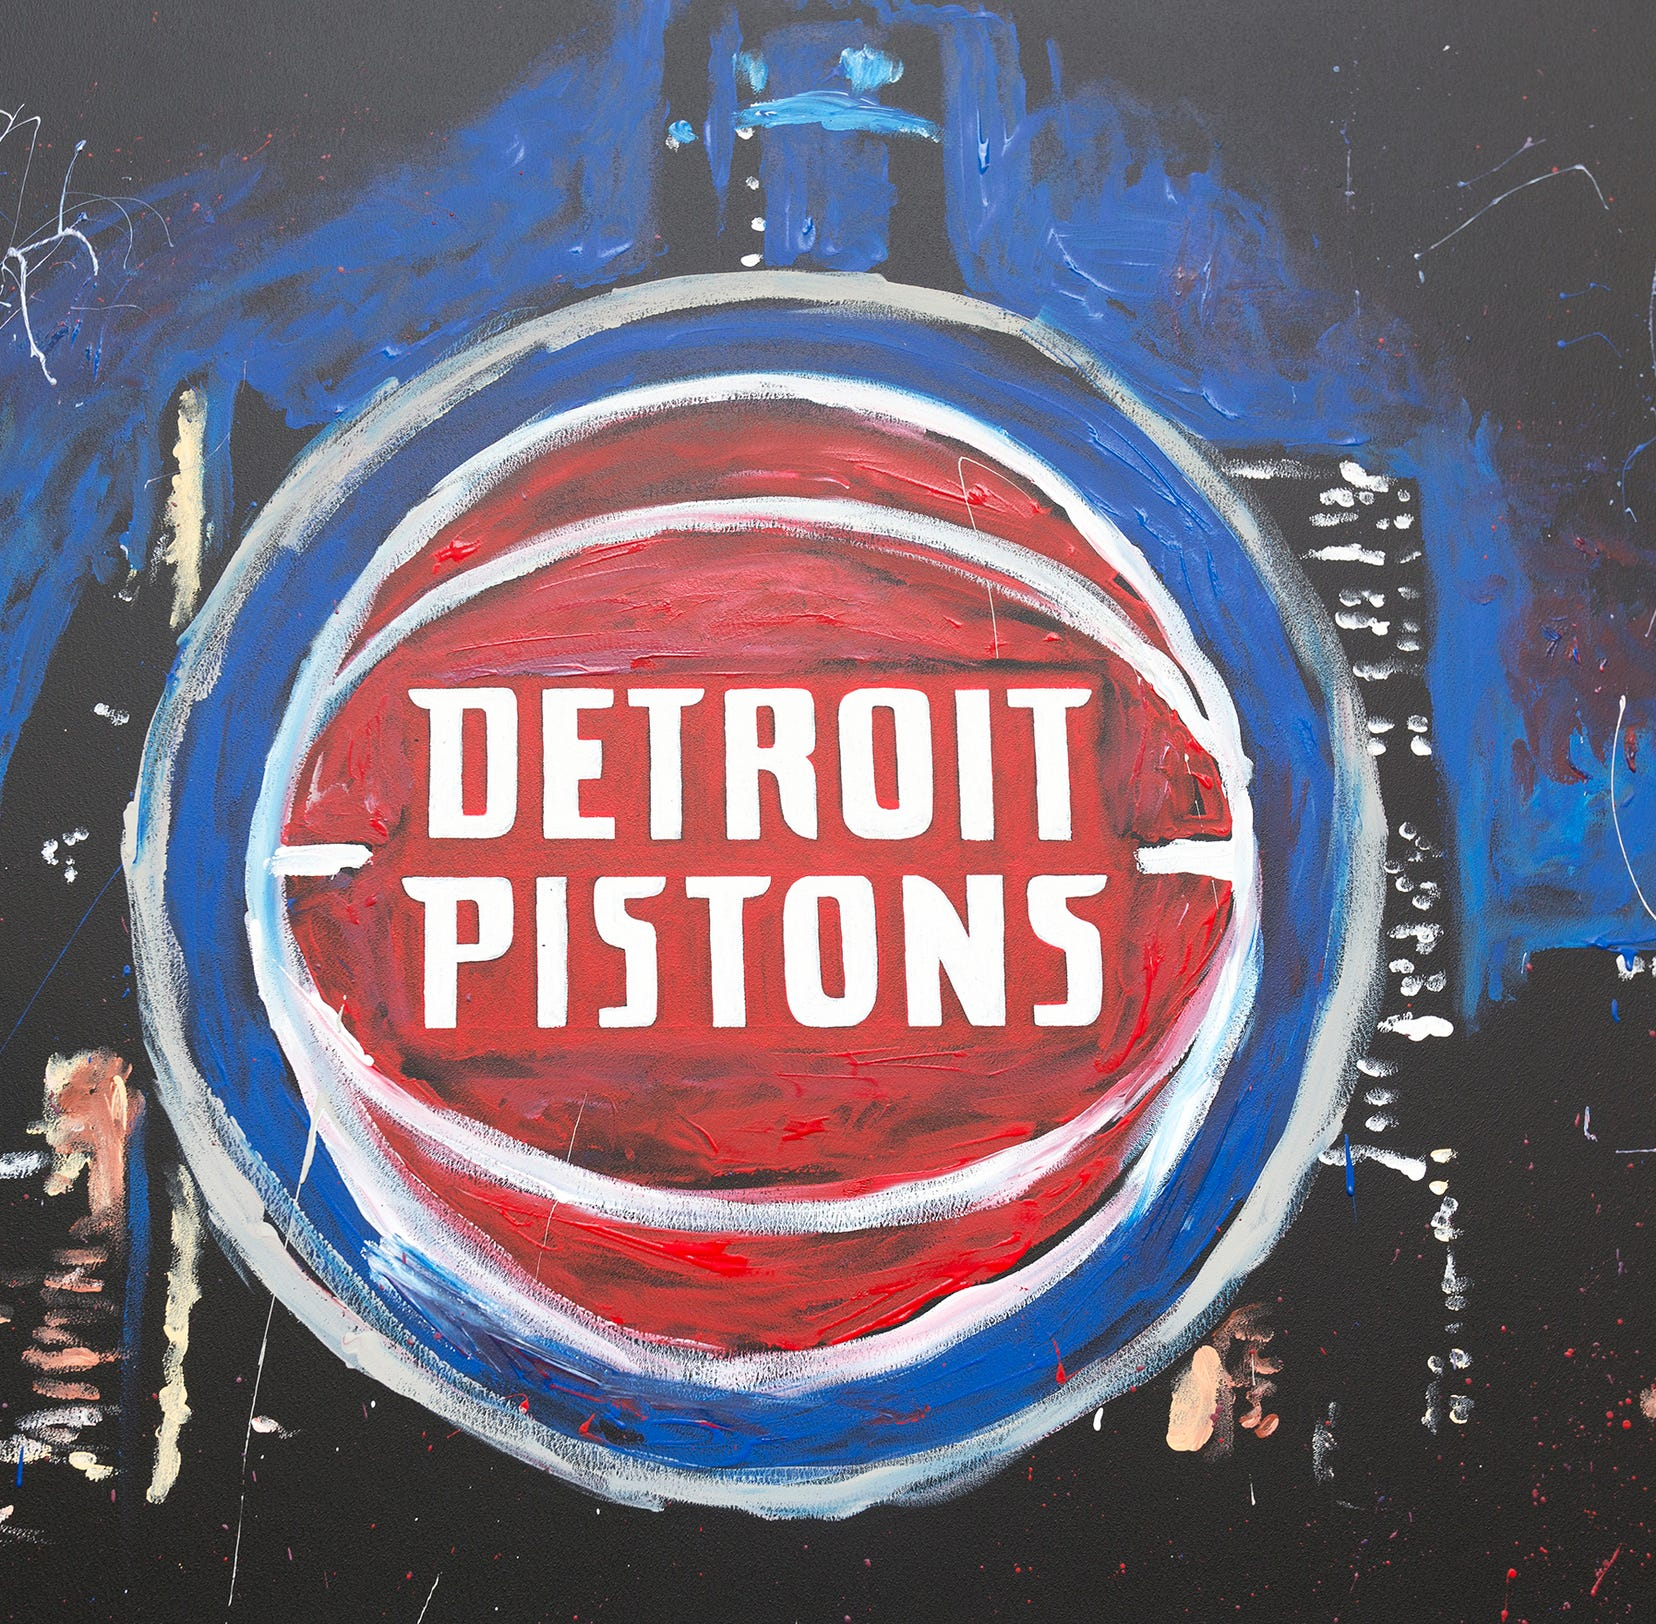 Detroit Pistons just hired the developer of ESPN's trade machine